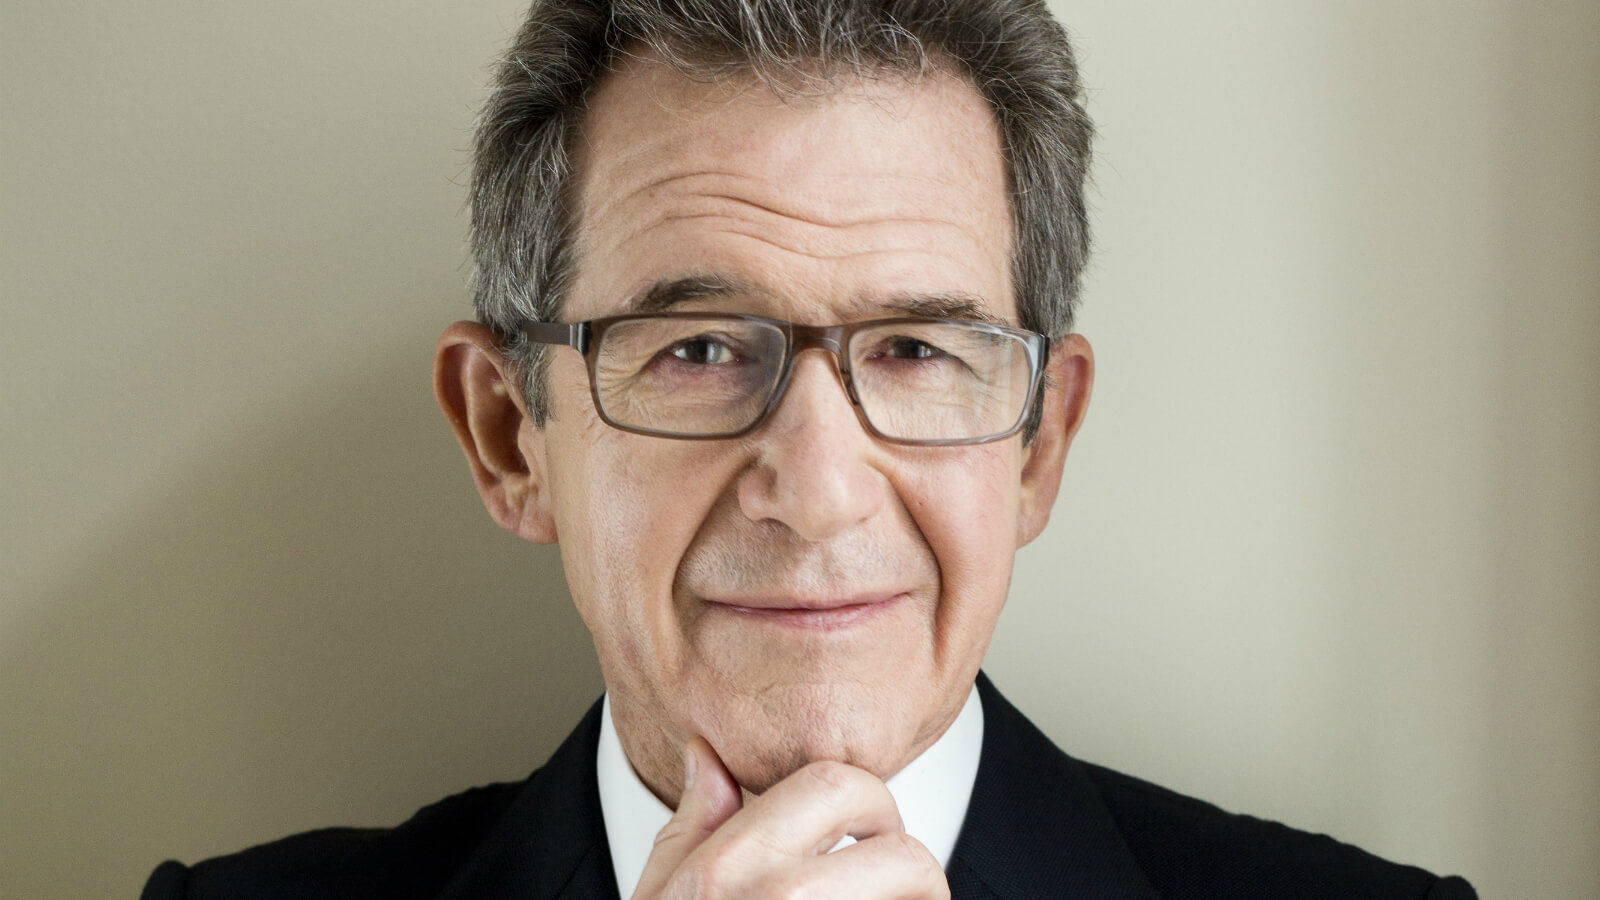 Lord browne photo 1600x900